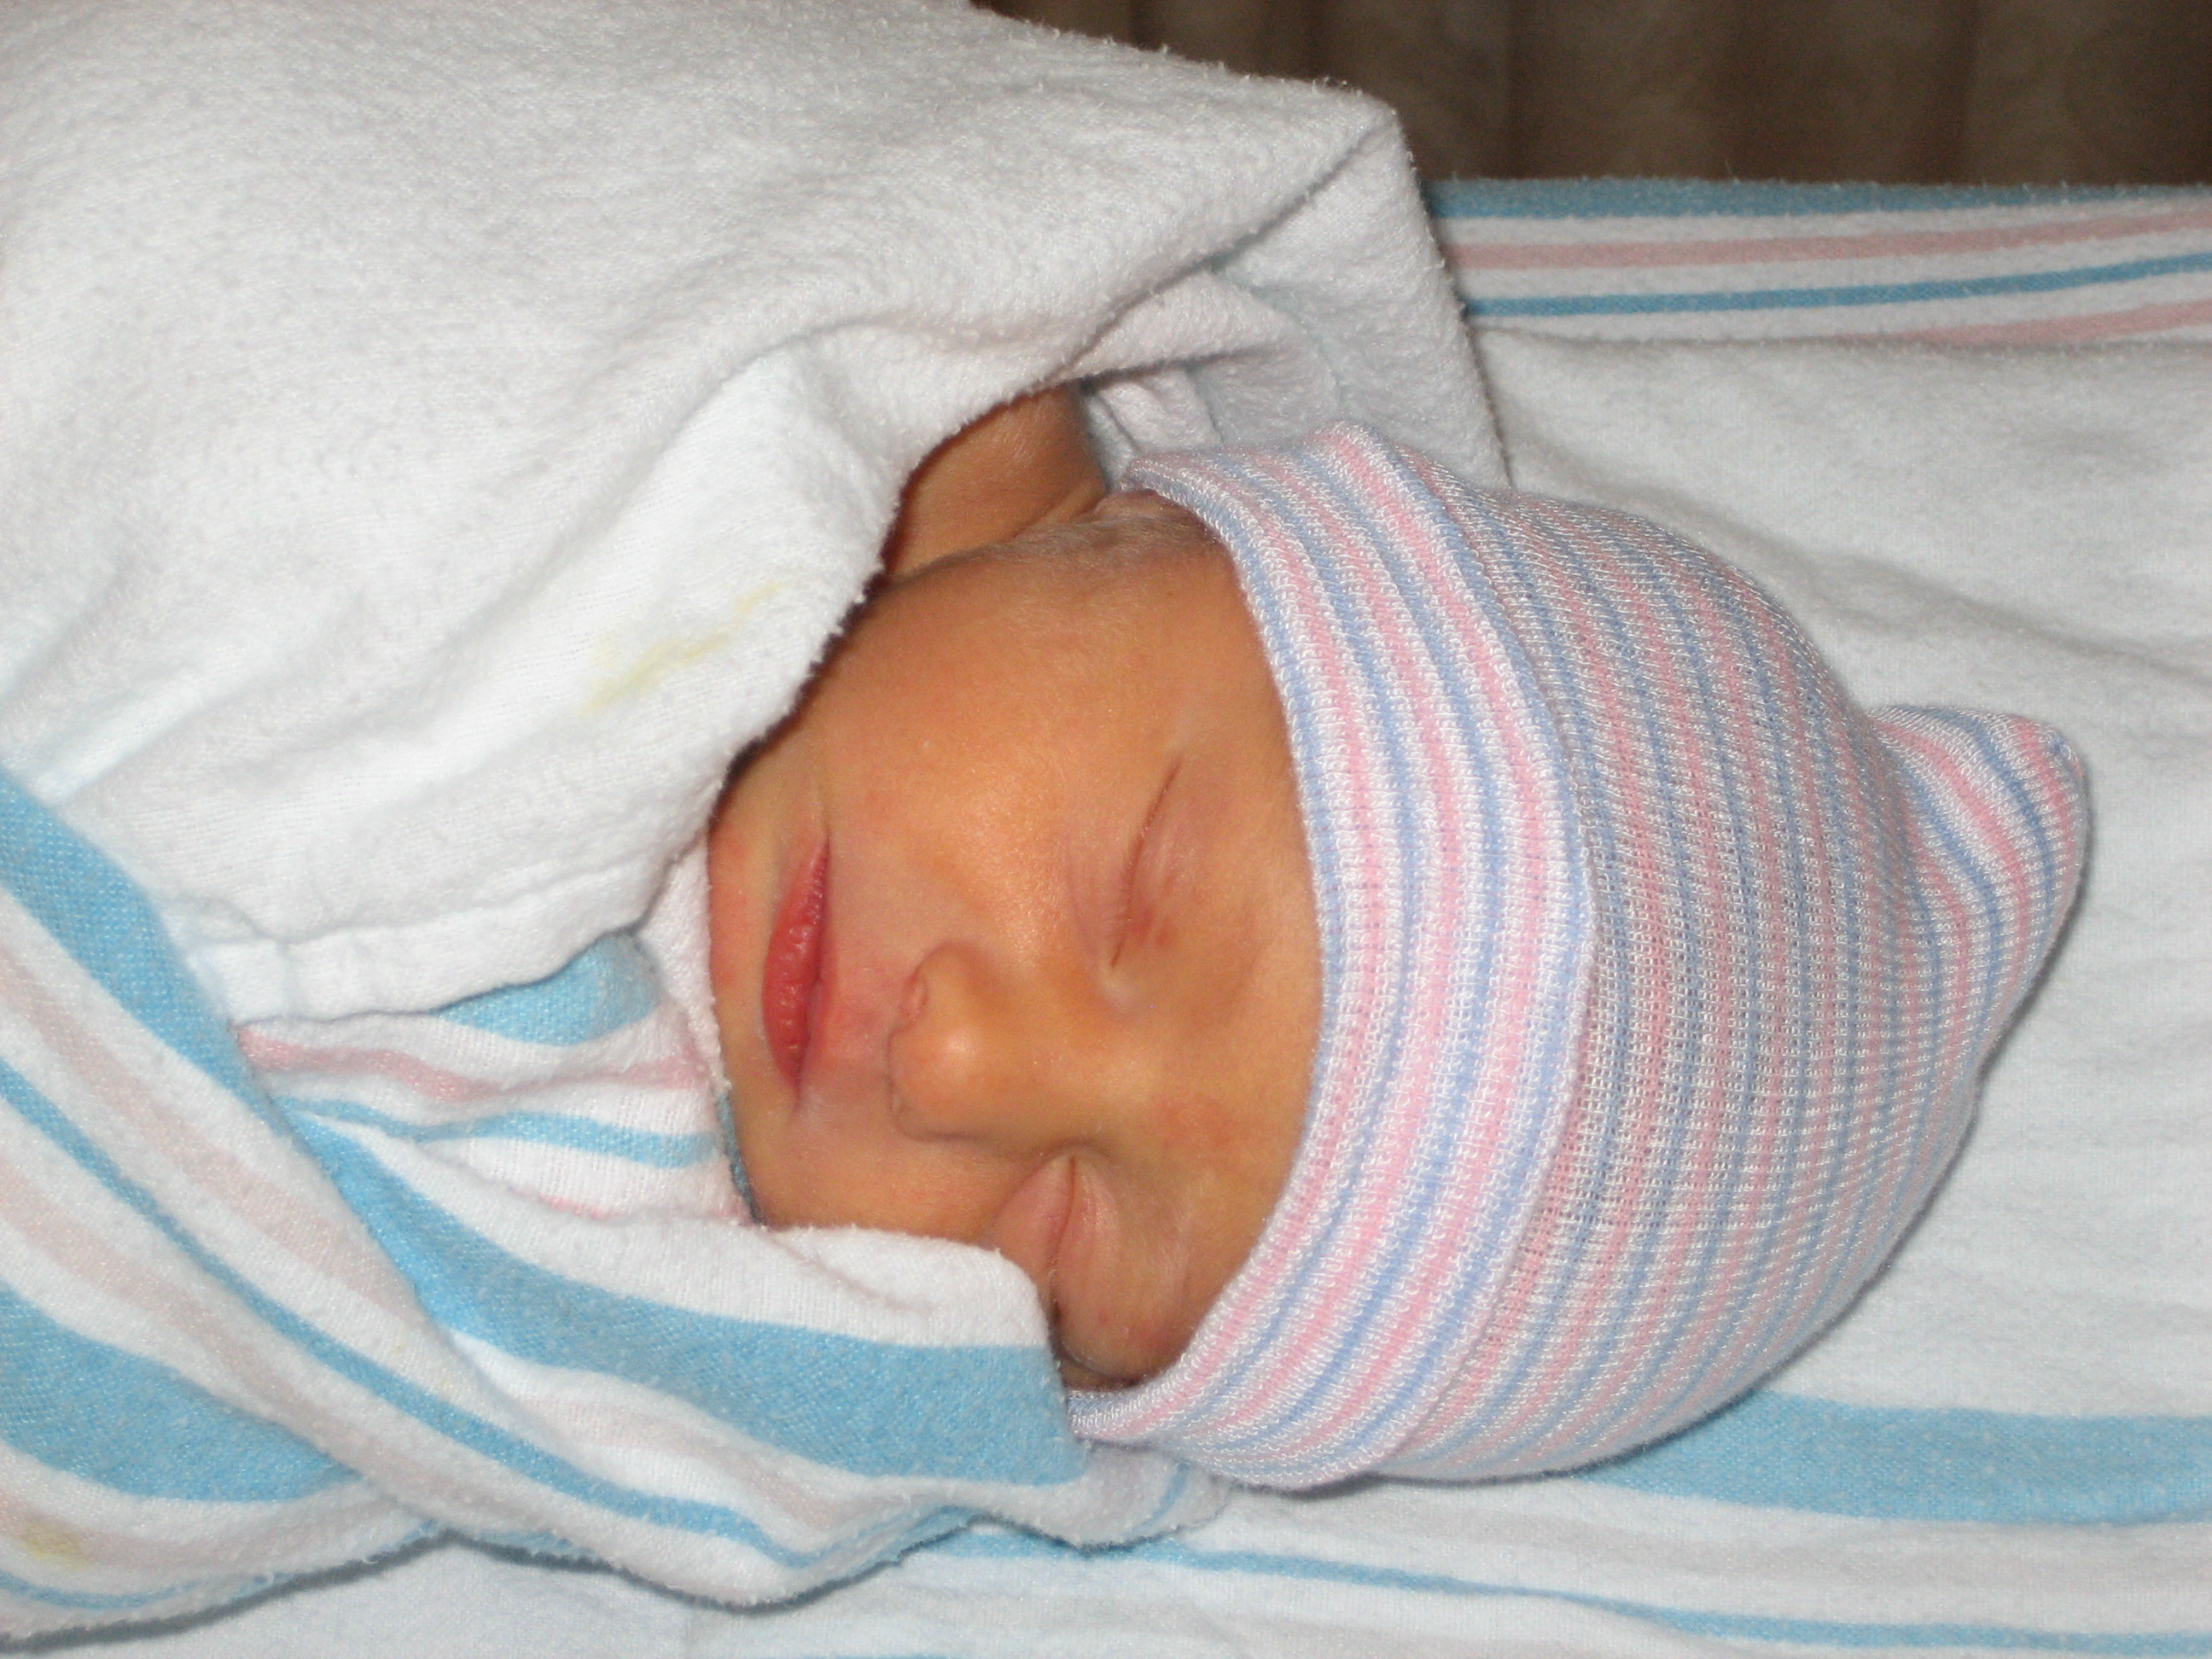 Bianca was born on April 20, 2007